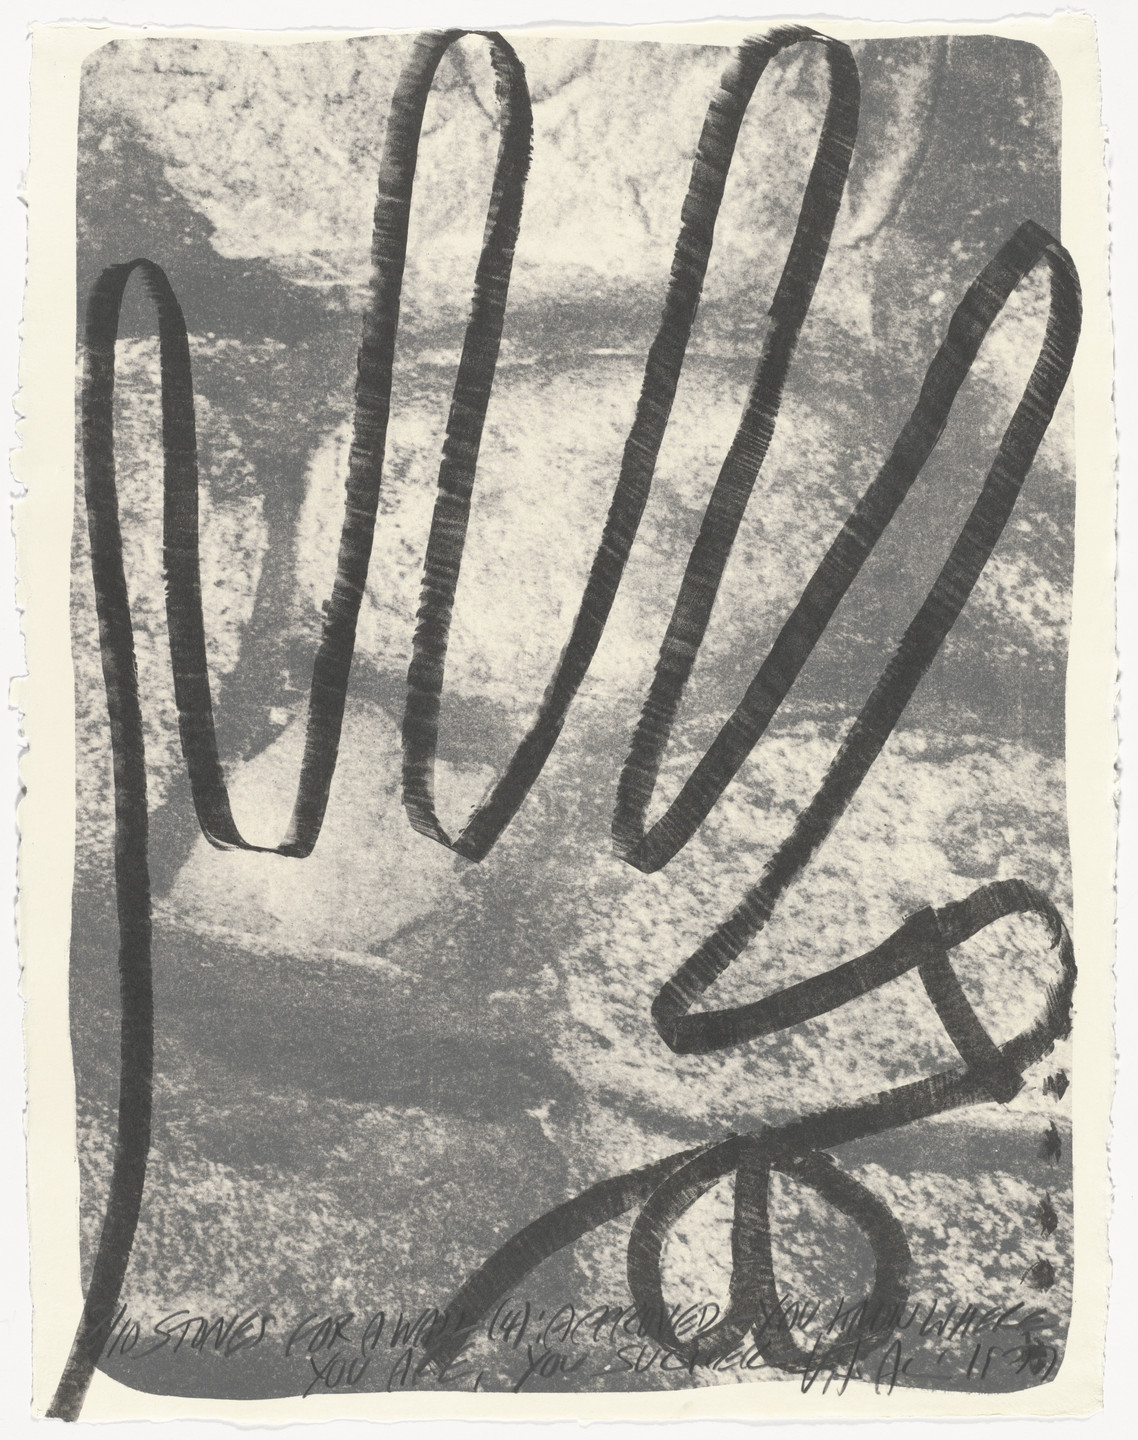 Vito Acconci. Stones for a Wall (4) from Stones for a Wall. 1977